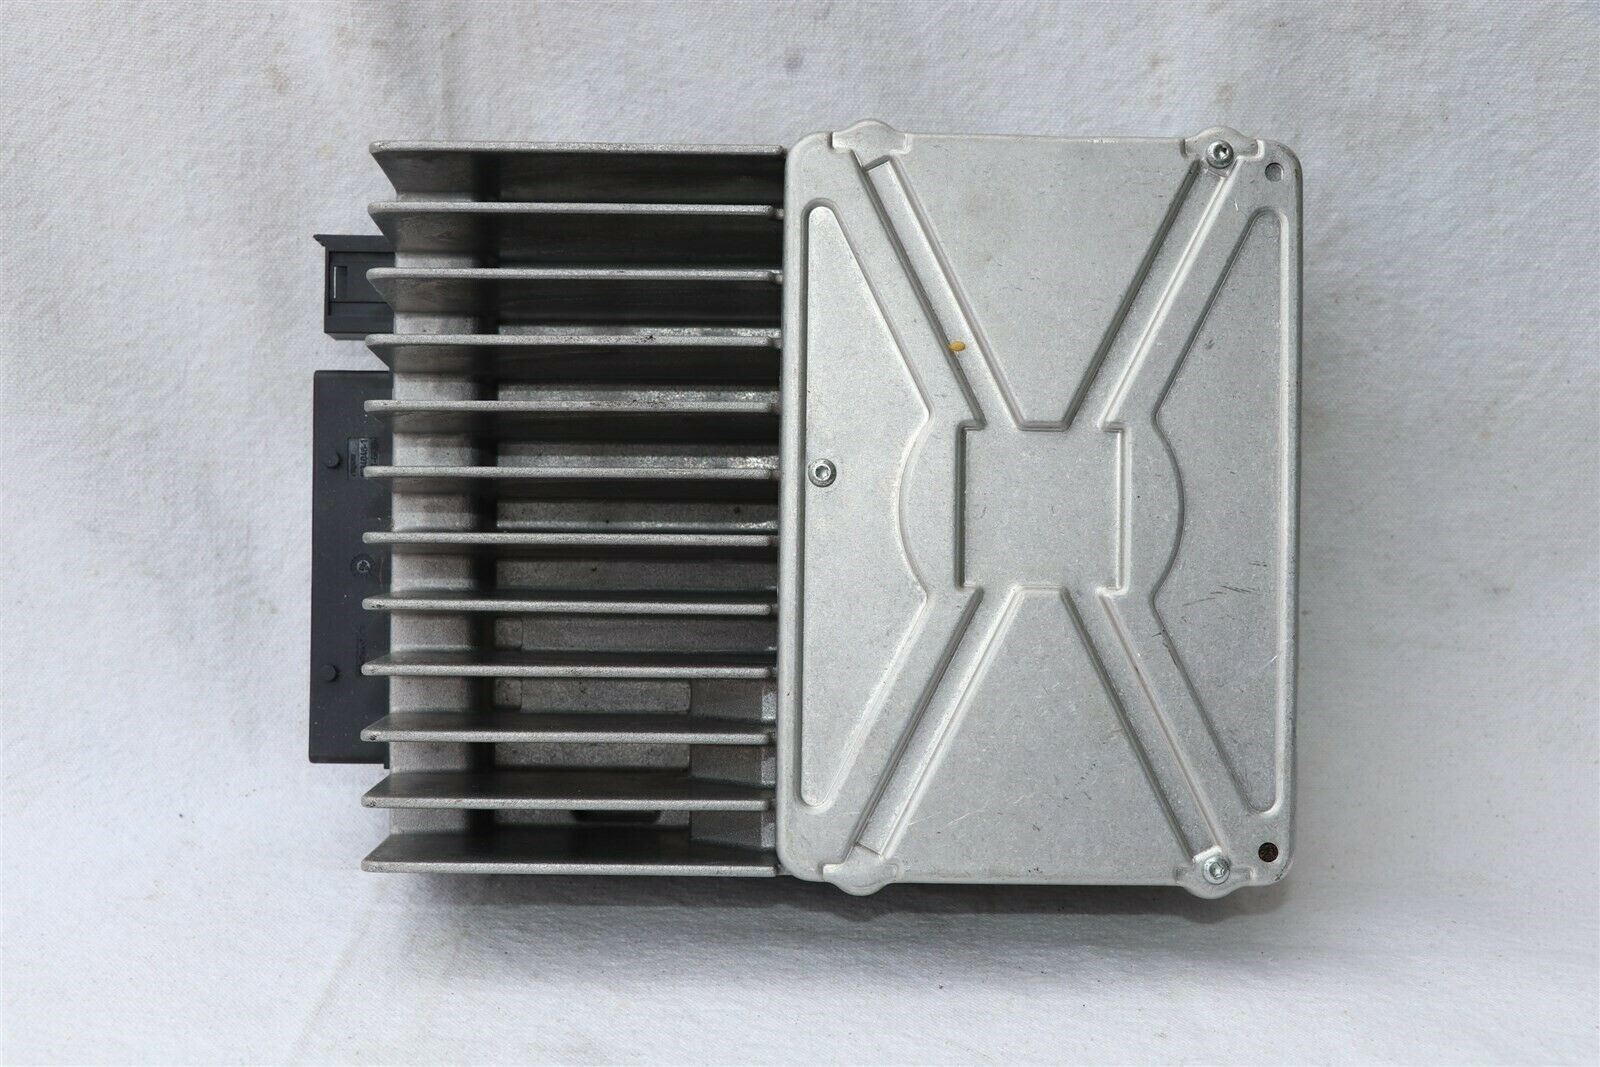 Mercedes W251 Radio Stereo Amplifier Amp A2518209589 251-820-95-89 Herman Becker